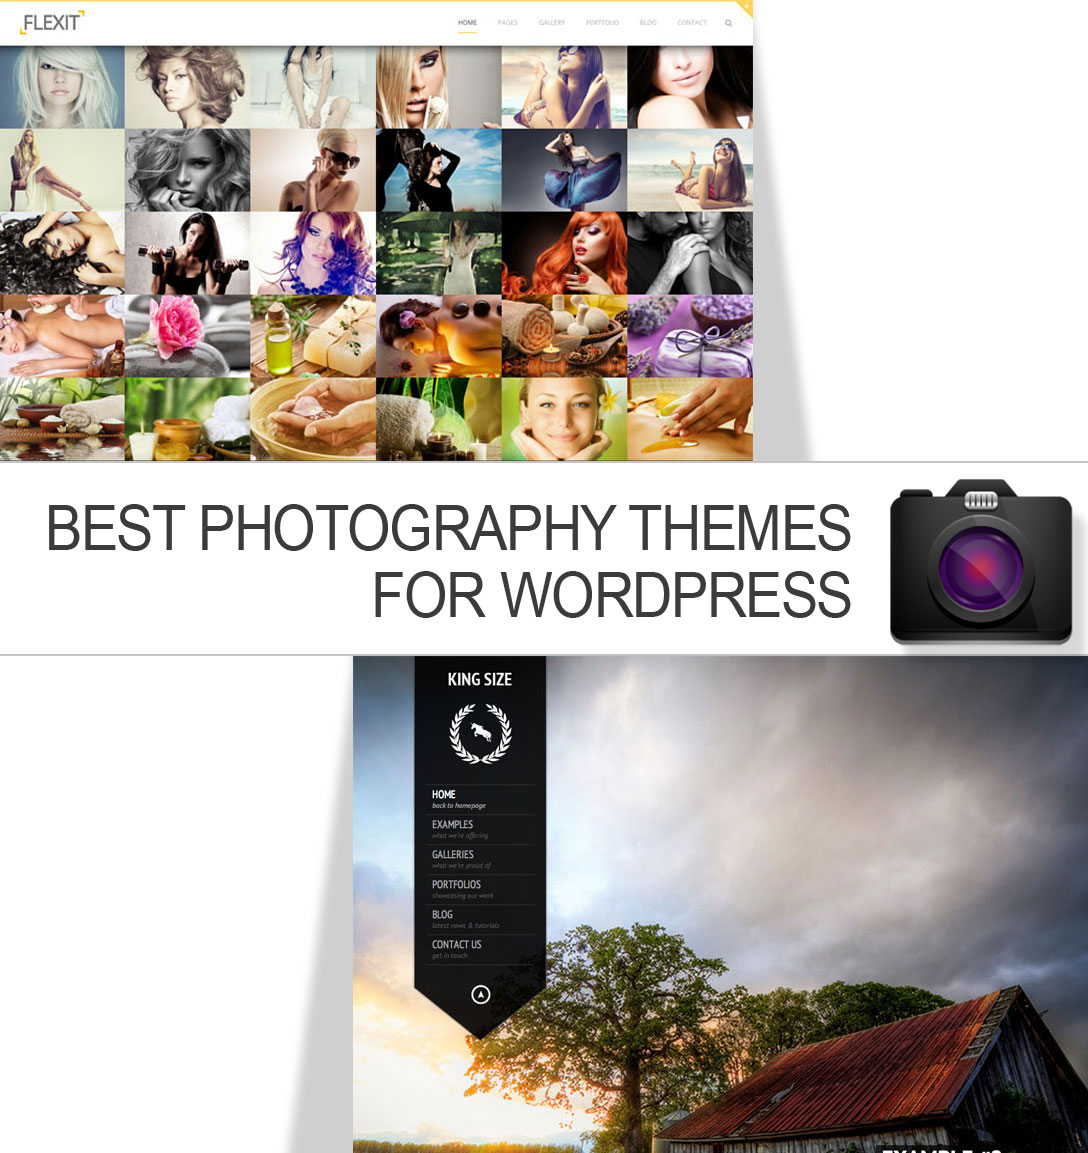 Best WordPress Photography Themes of 2013-2014